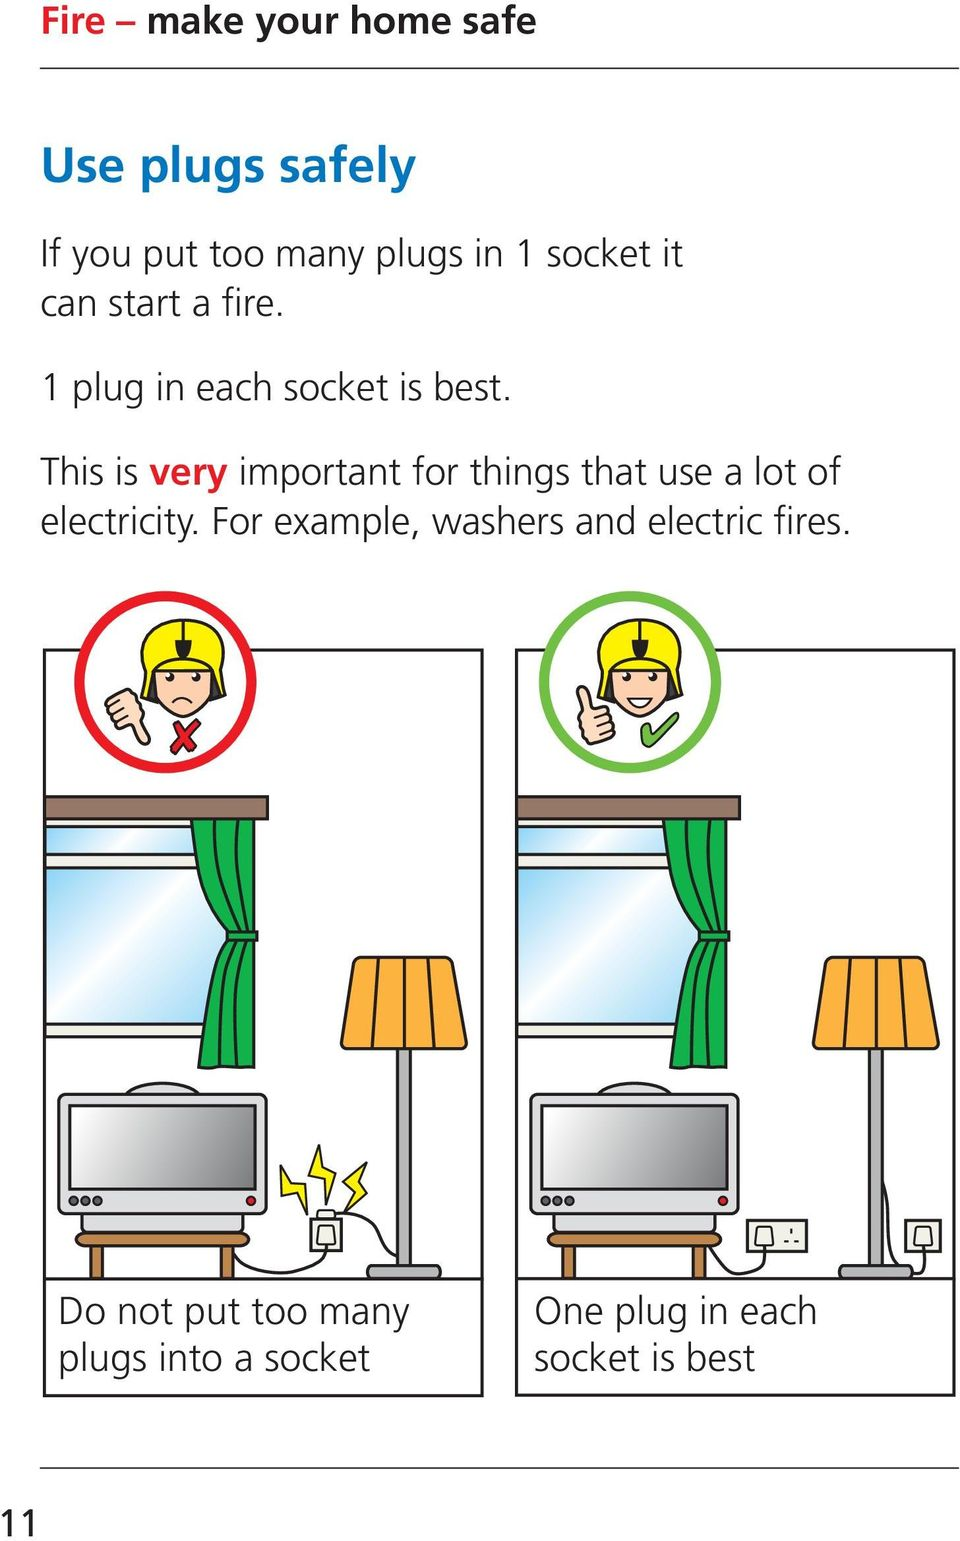 This is very important for things that use a lot of electricity.